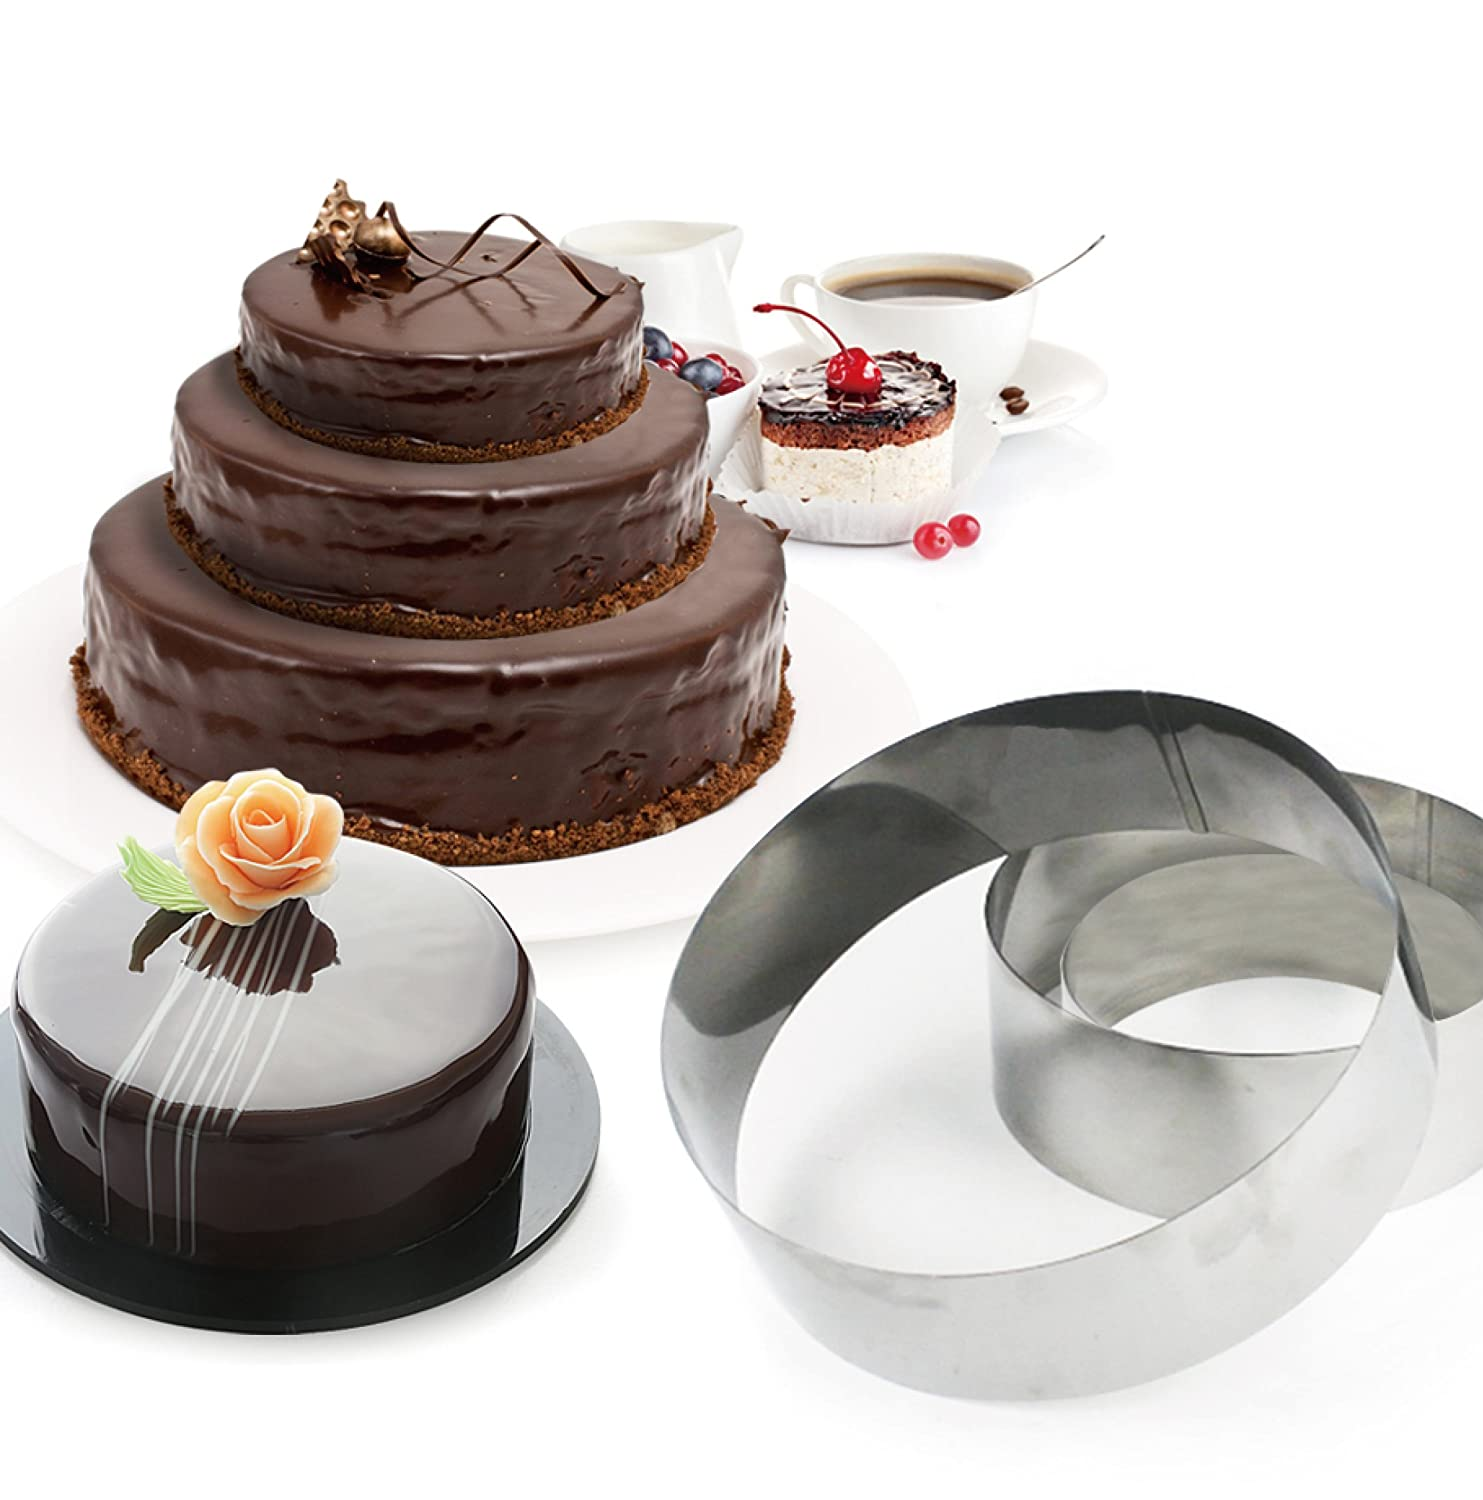 3 Tier Round Multilayer Anniversary Birthday Cake Baking Pans,Stainless Steel 3 Sizes Rings Round Molding Mousse Cake Rings(Round-shape,Set of 3)